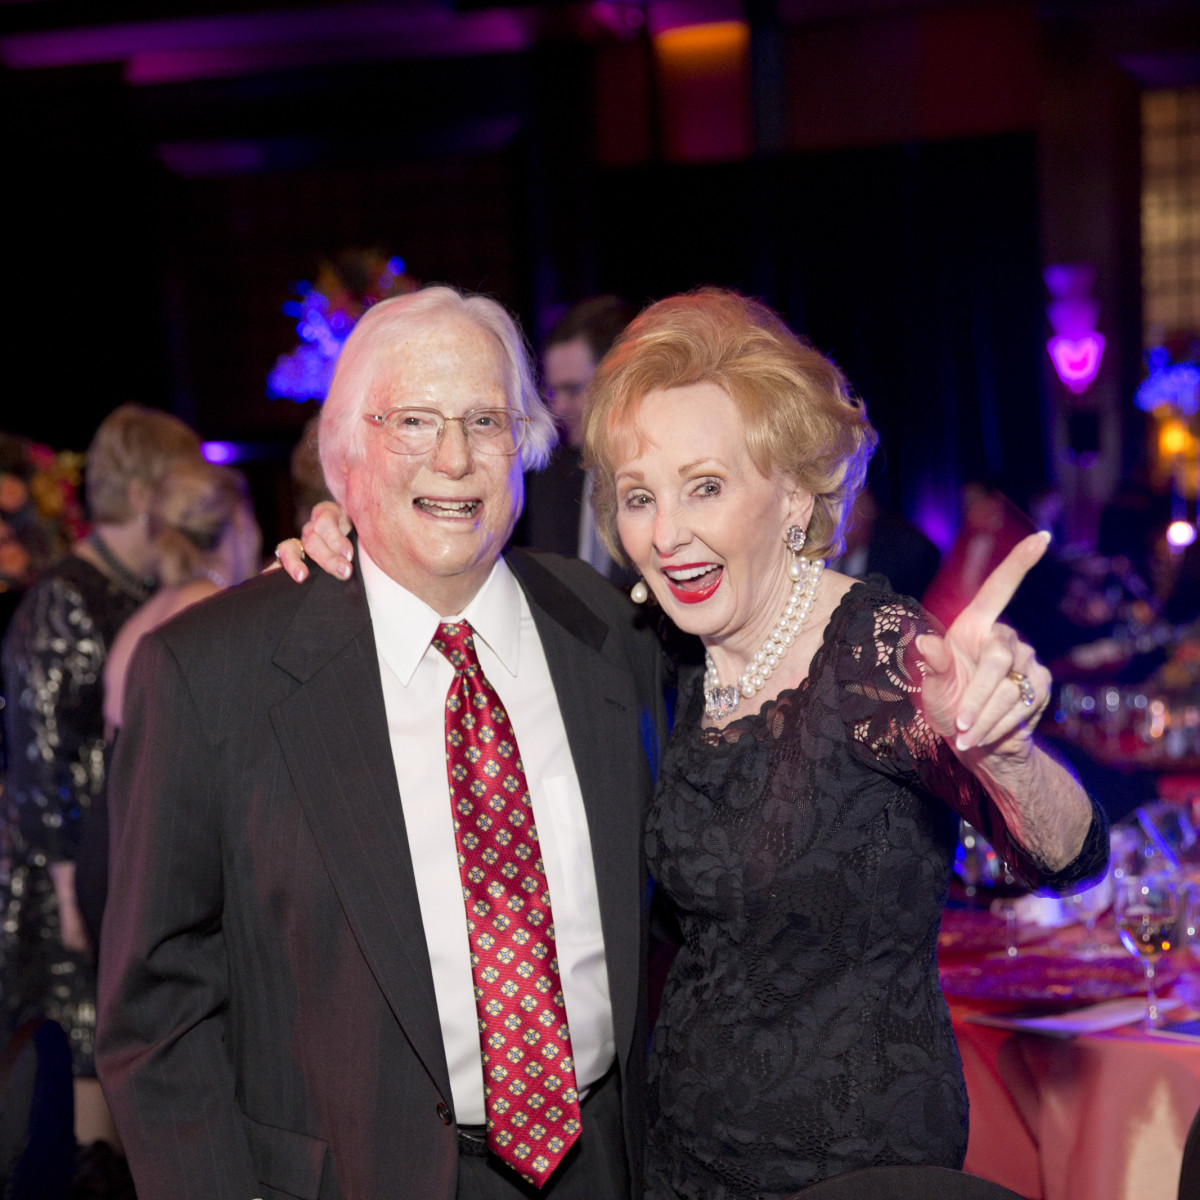 News, Shelby, Rendezvous with Houston Methodist, Nov. 2015, Steve Dunn, Eva Lynn Dunn